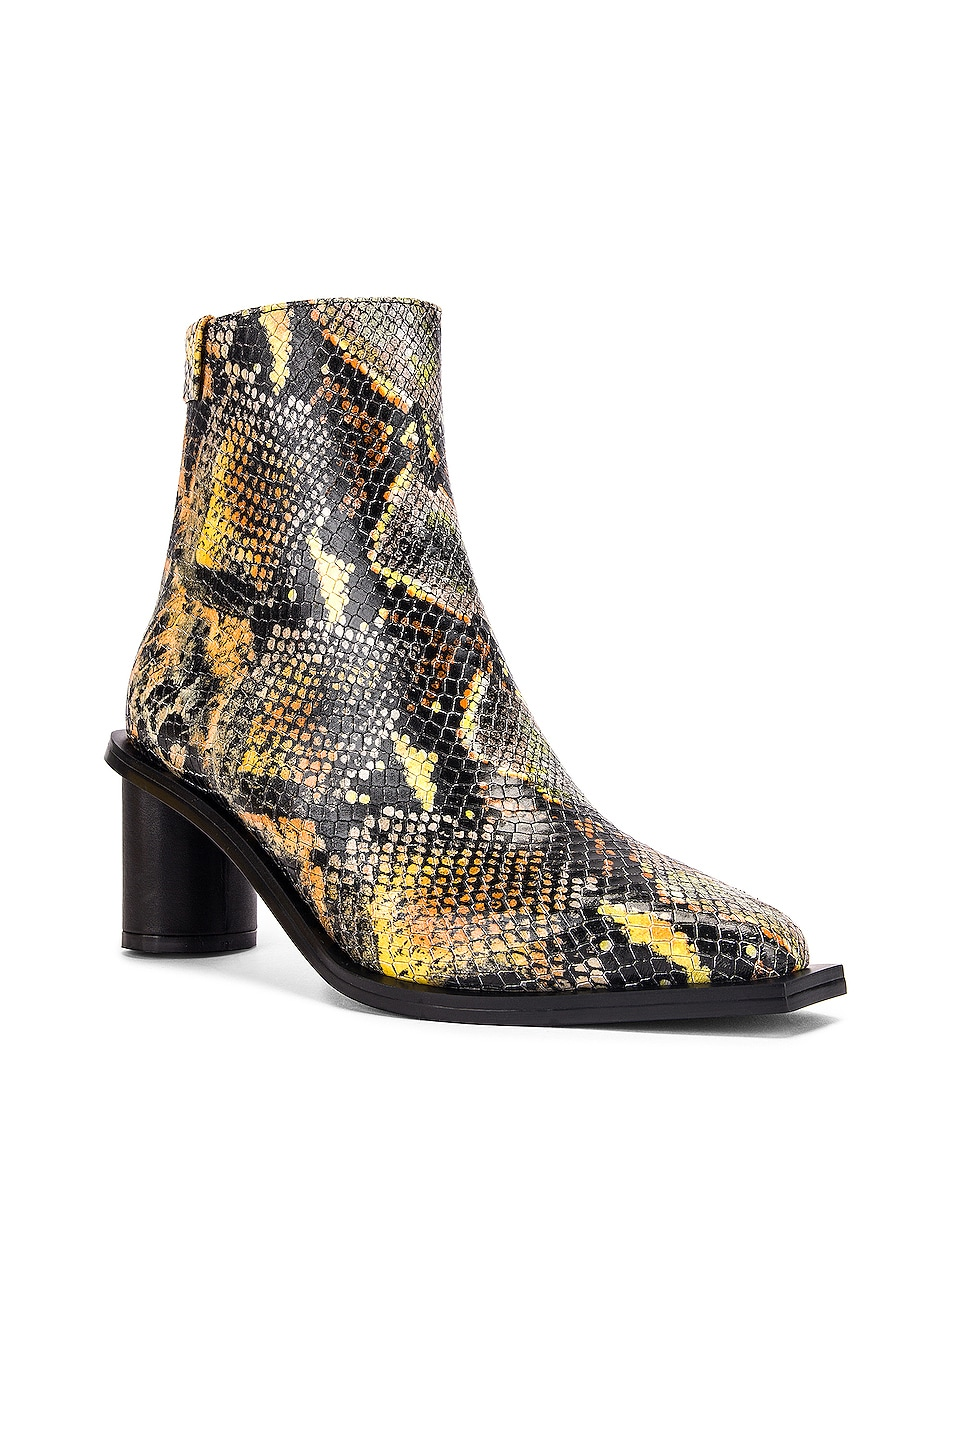 Image 2 of Reike Nen Oval Heel Ankle Boots in Orange Multicolor